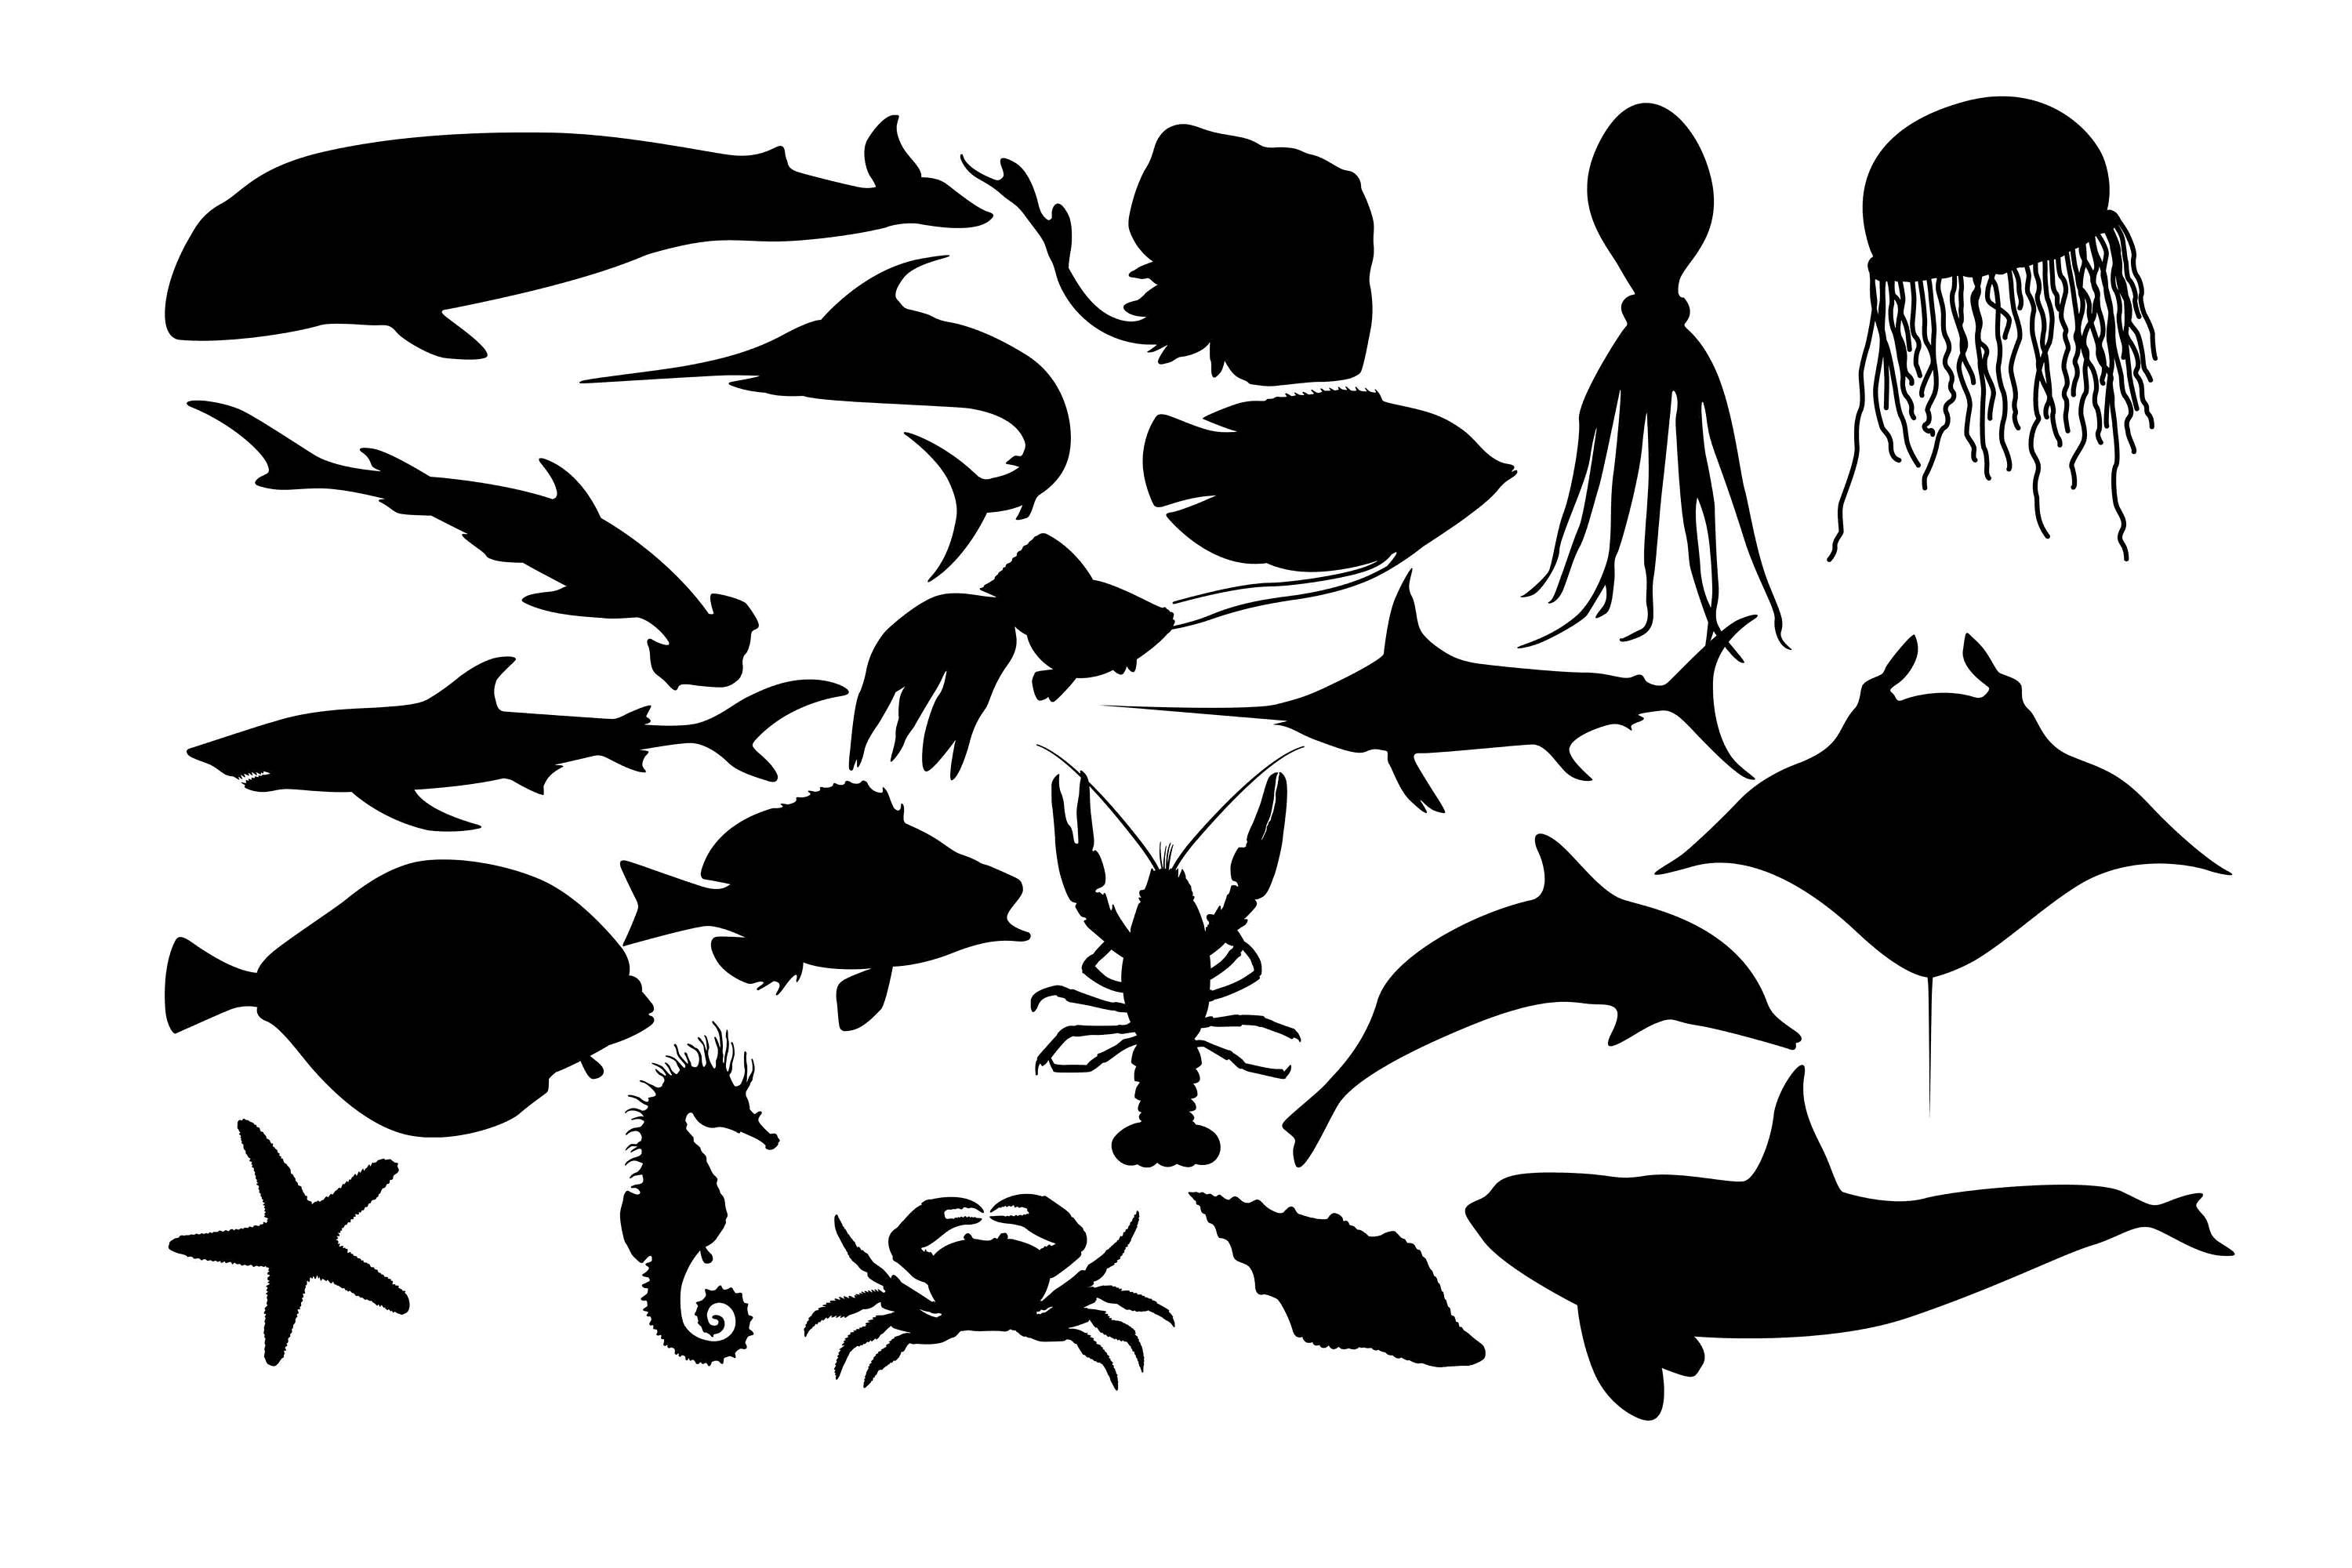 Sea Fish Silhouette, Fish ClipArt, Fish Silhouette, Saltwater fish image,  Ocean fish silhouette, Vector image SVG DXF eps Buy 2 Get 1 FREE.